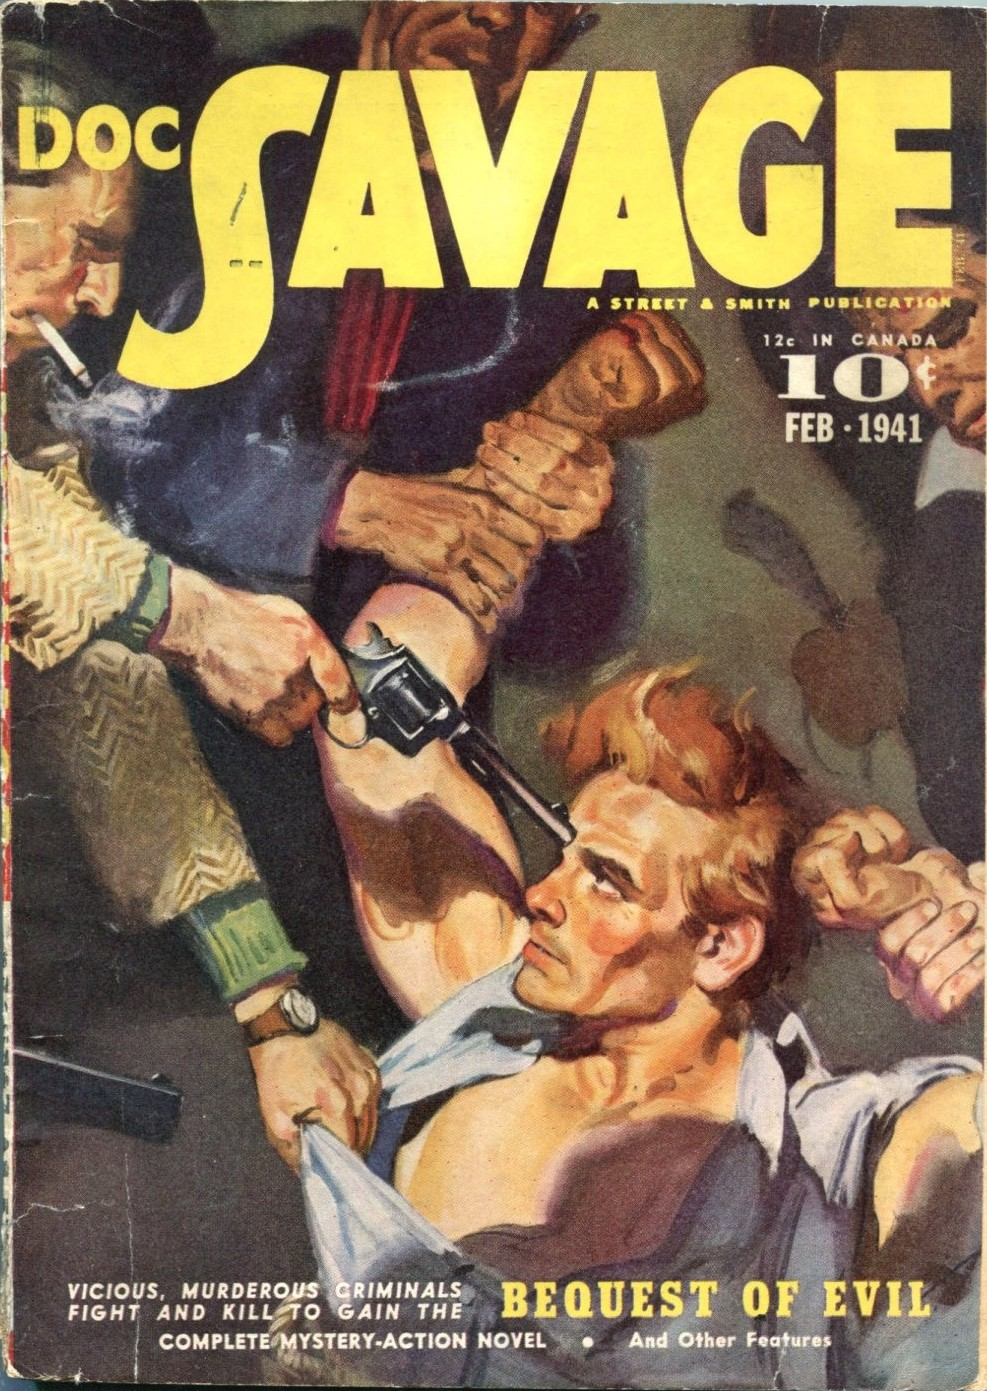 https://pulpcovers.com/wp-content/uploads/2016/02/Doc-Savage-February-1941.jpg